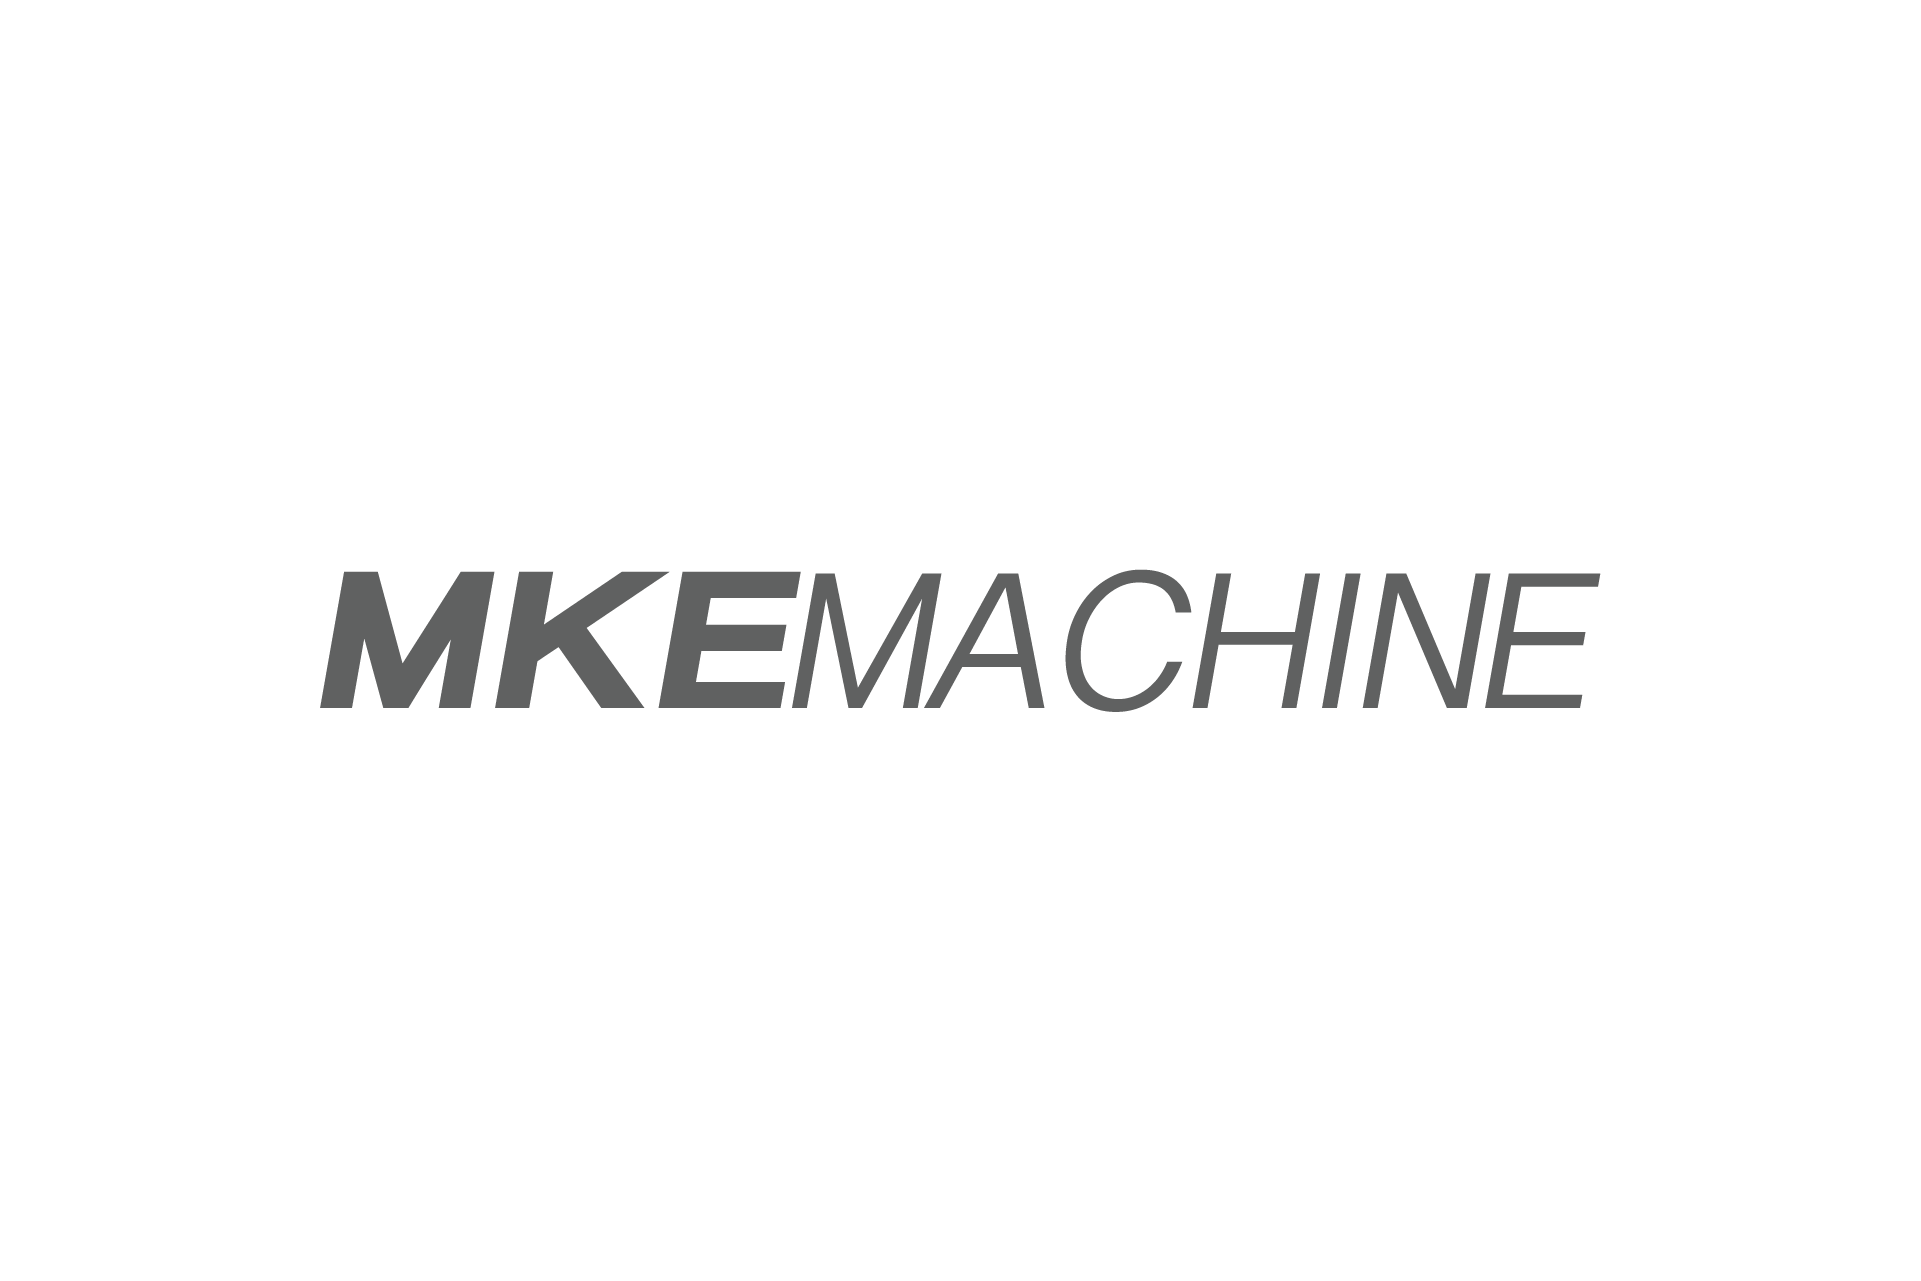 MKE Machine Logo Design Concepts 10